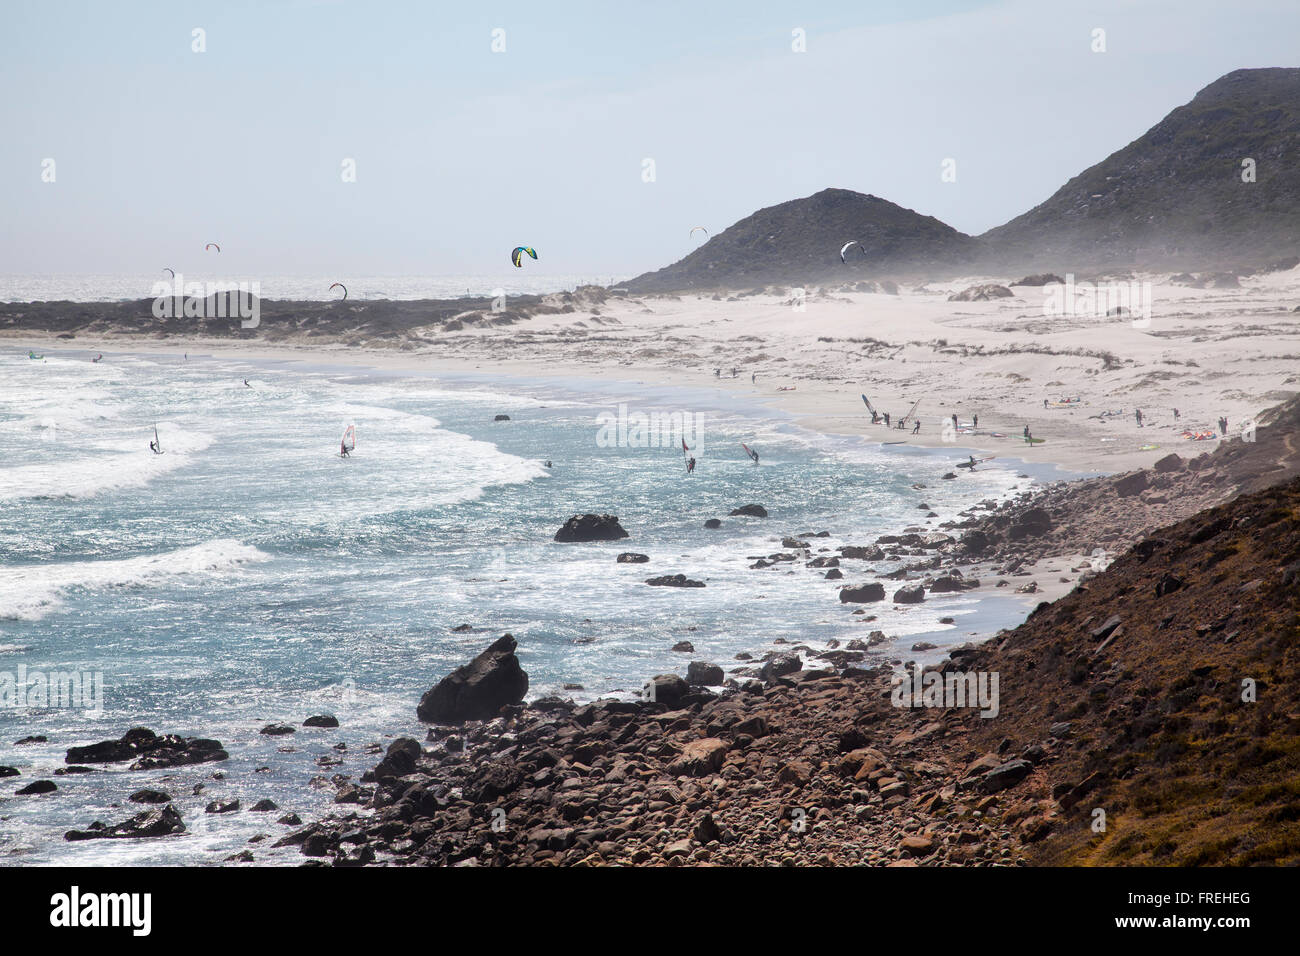 Scarborough Kitesurfers on Cape Peninsula - South Africa - Stock Image